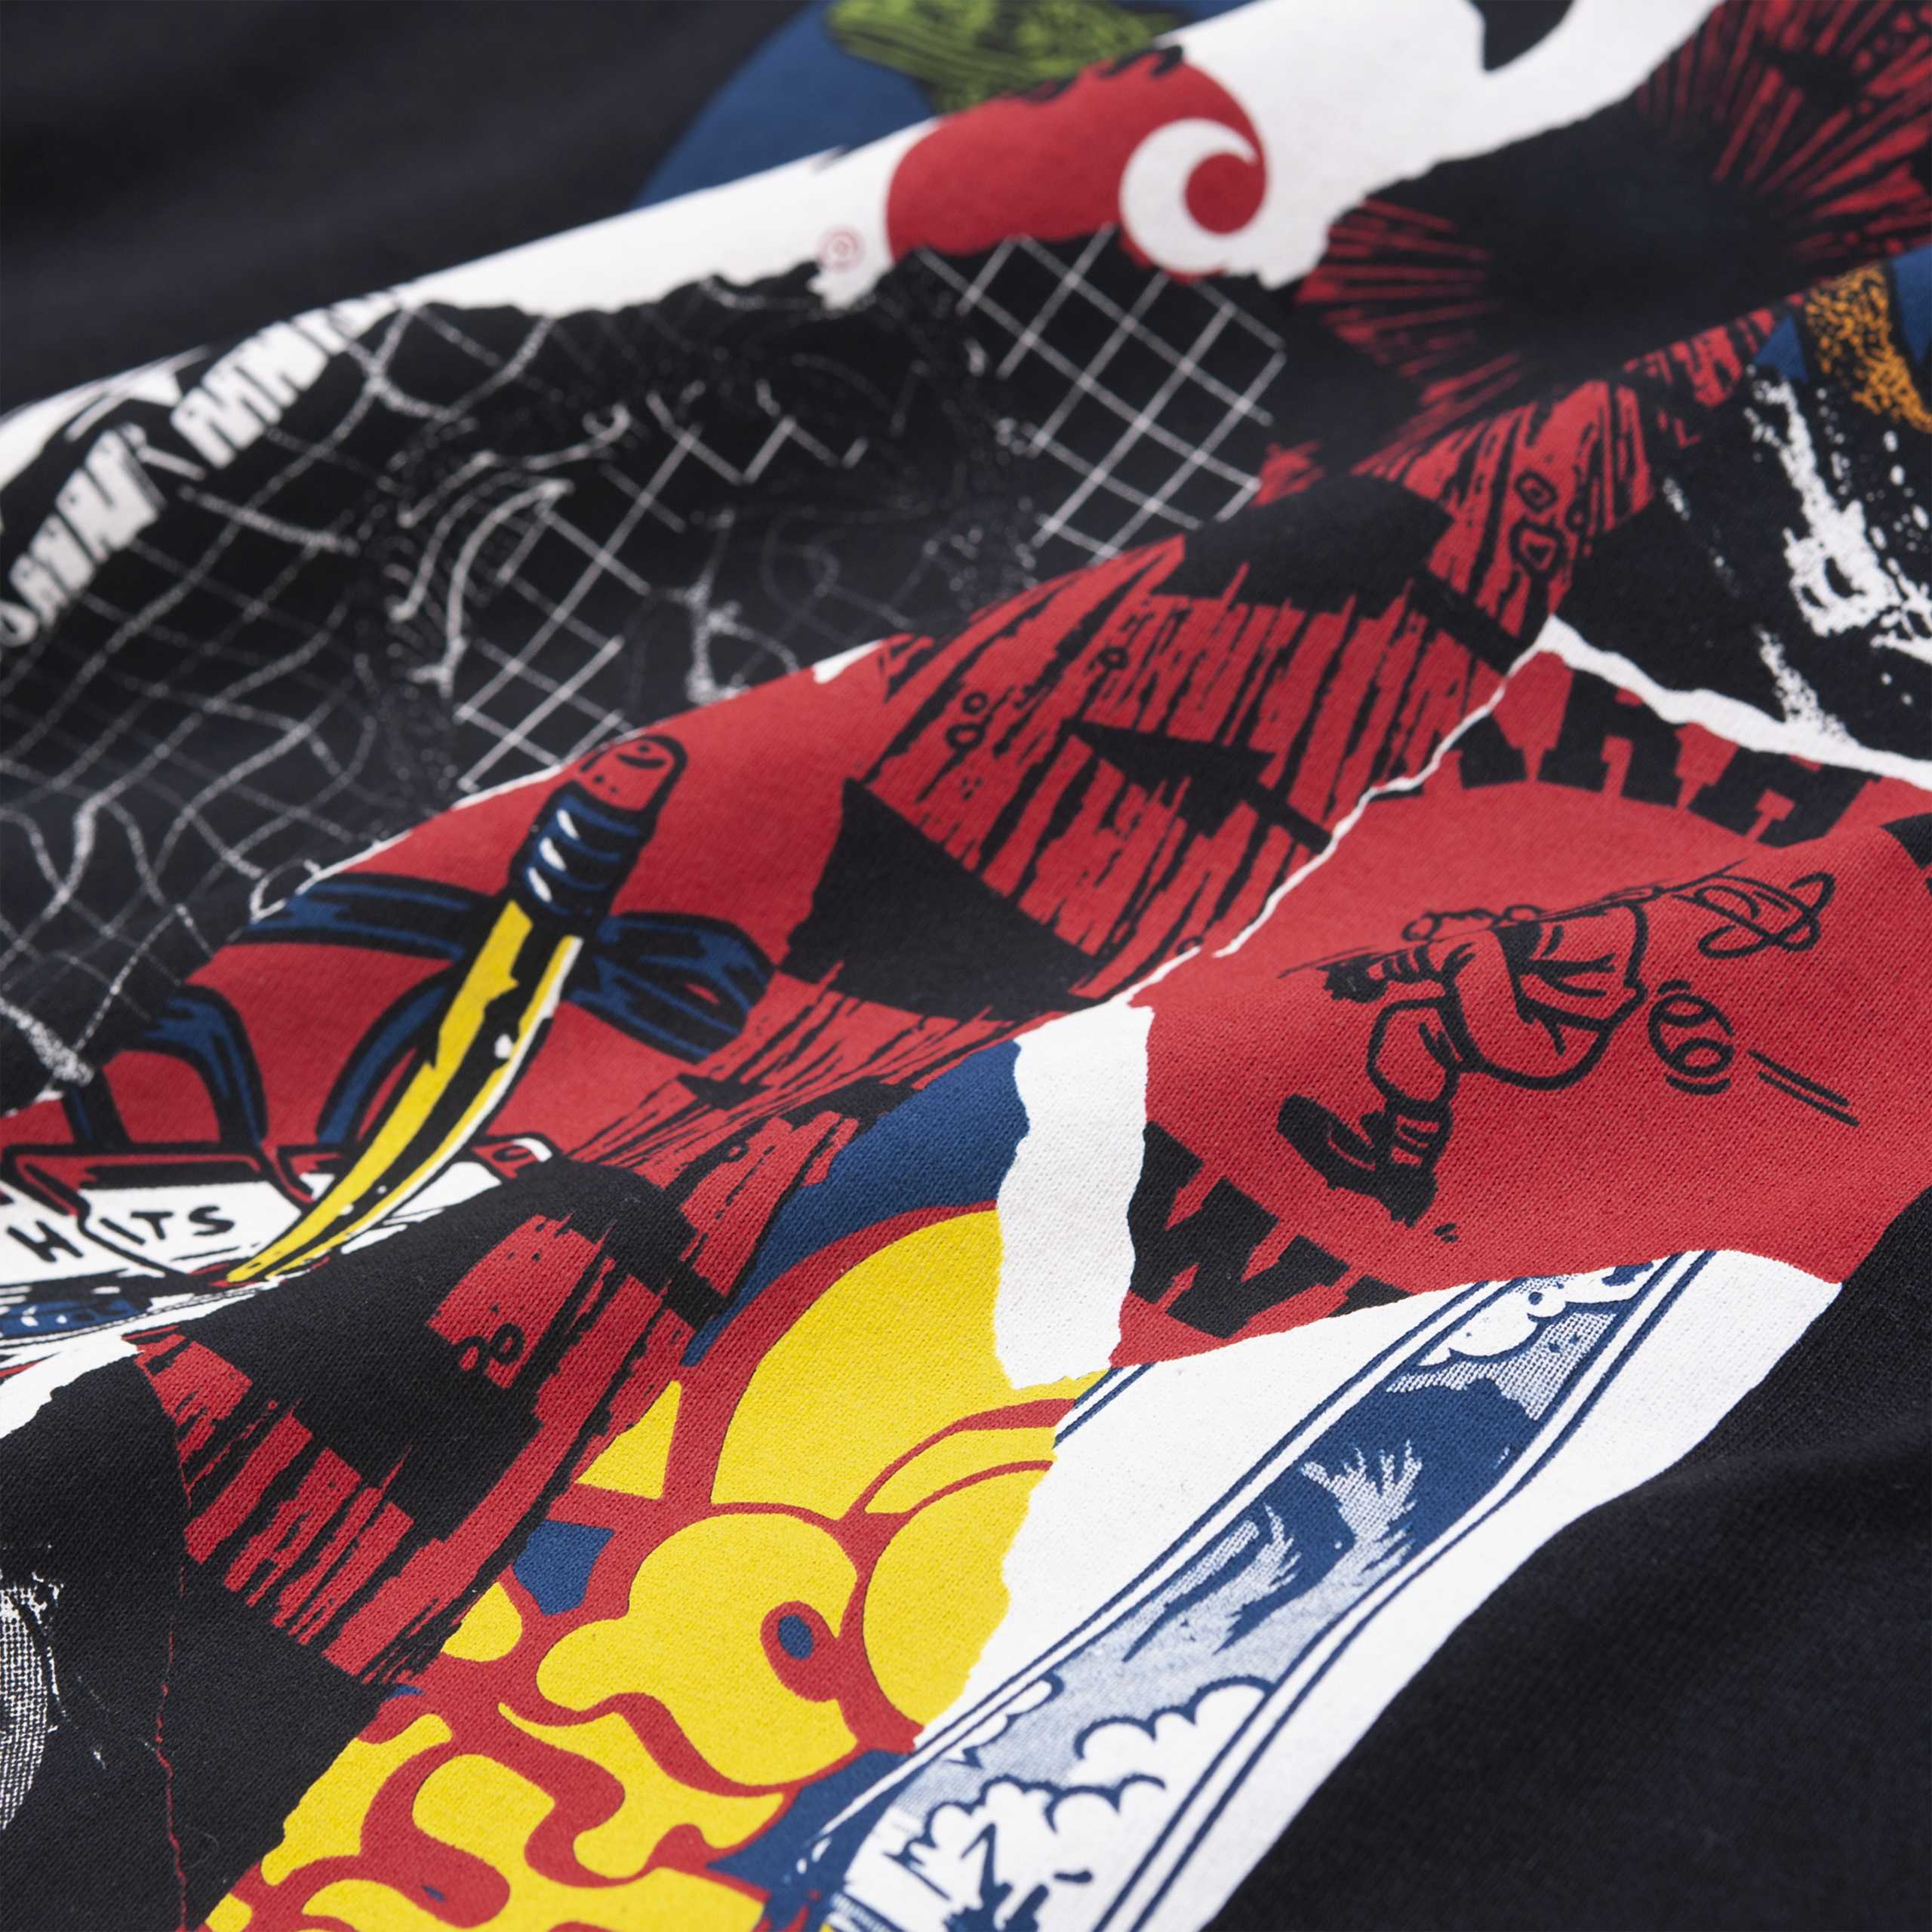 Studio Deniz Weber  Apparel Graphic Prints